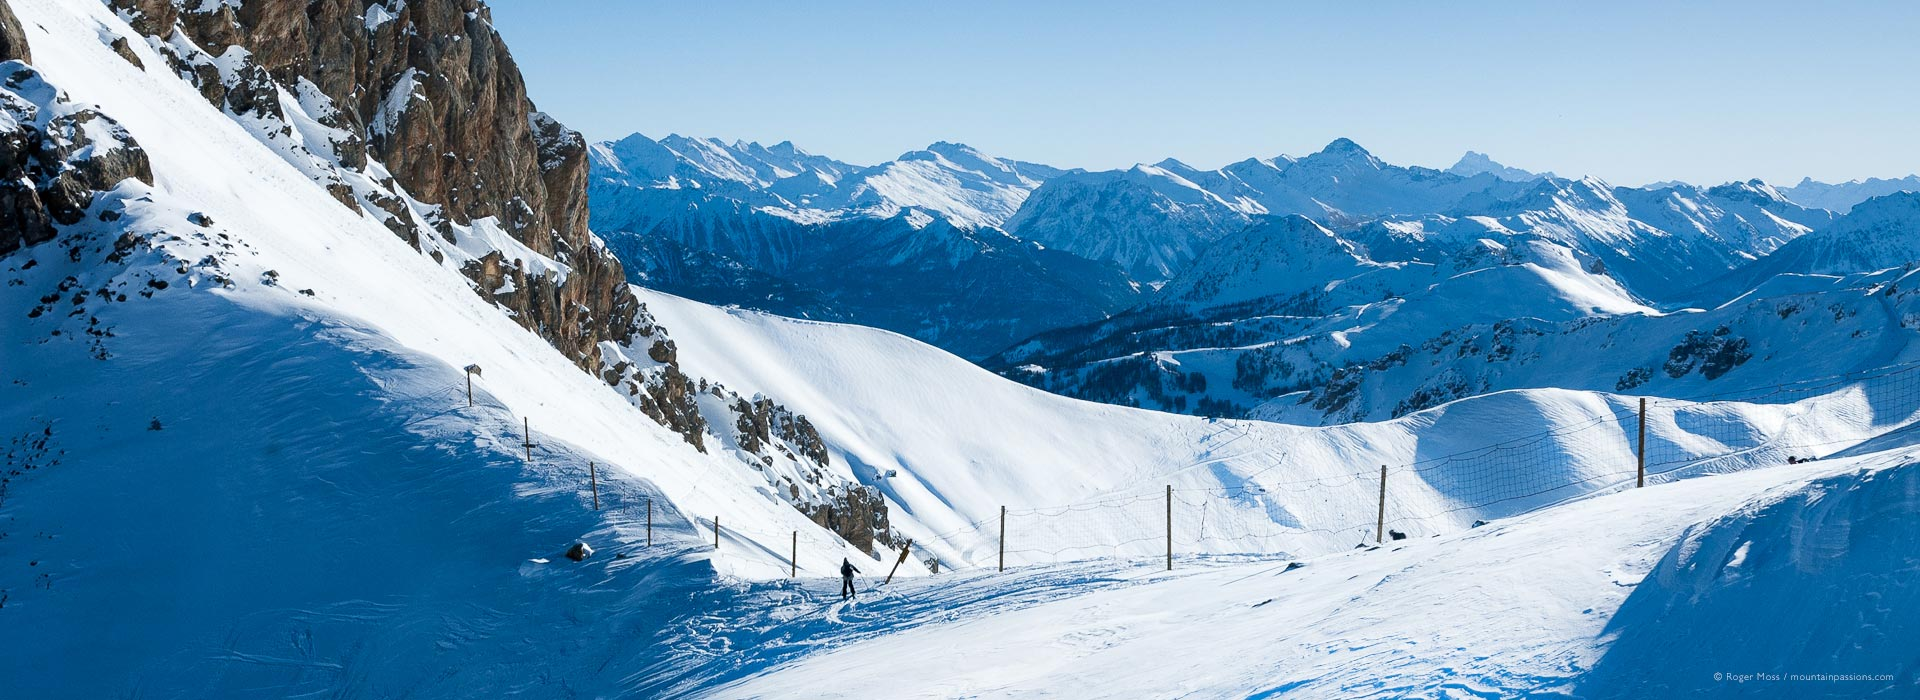 Long view of lone skier on snow-covered ridge with vast mountain background